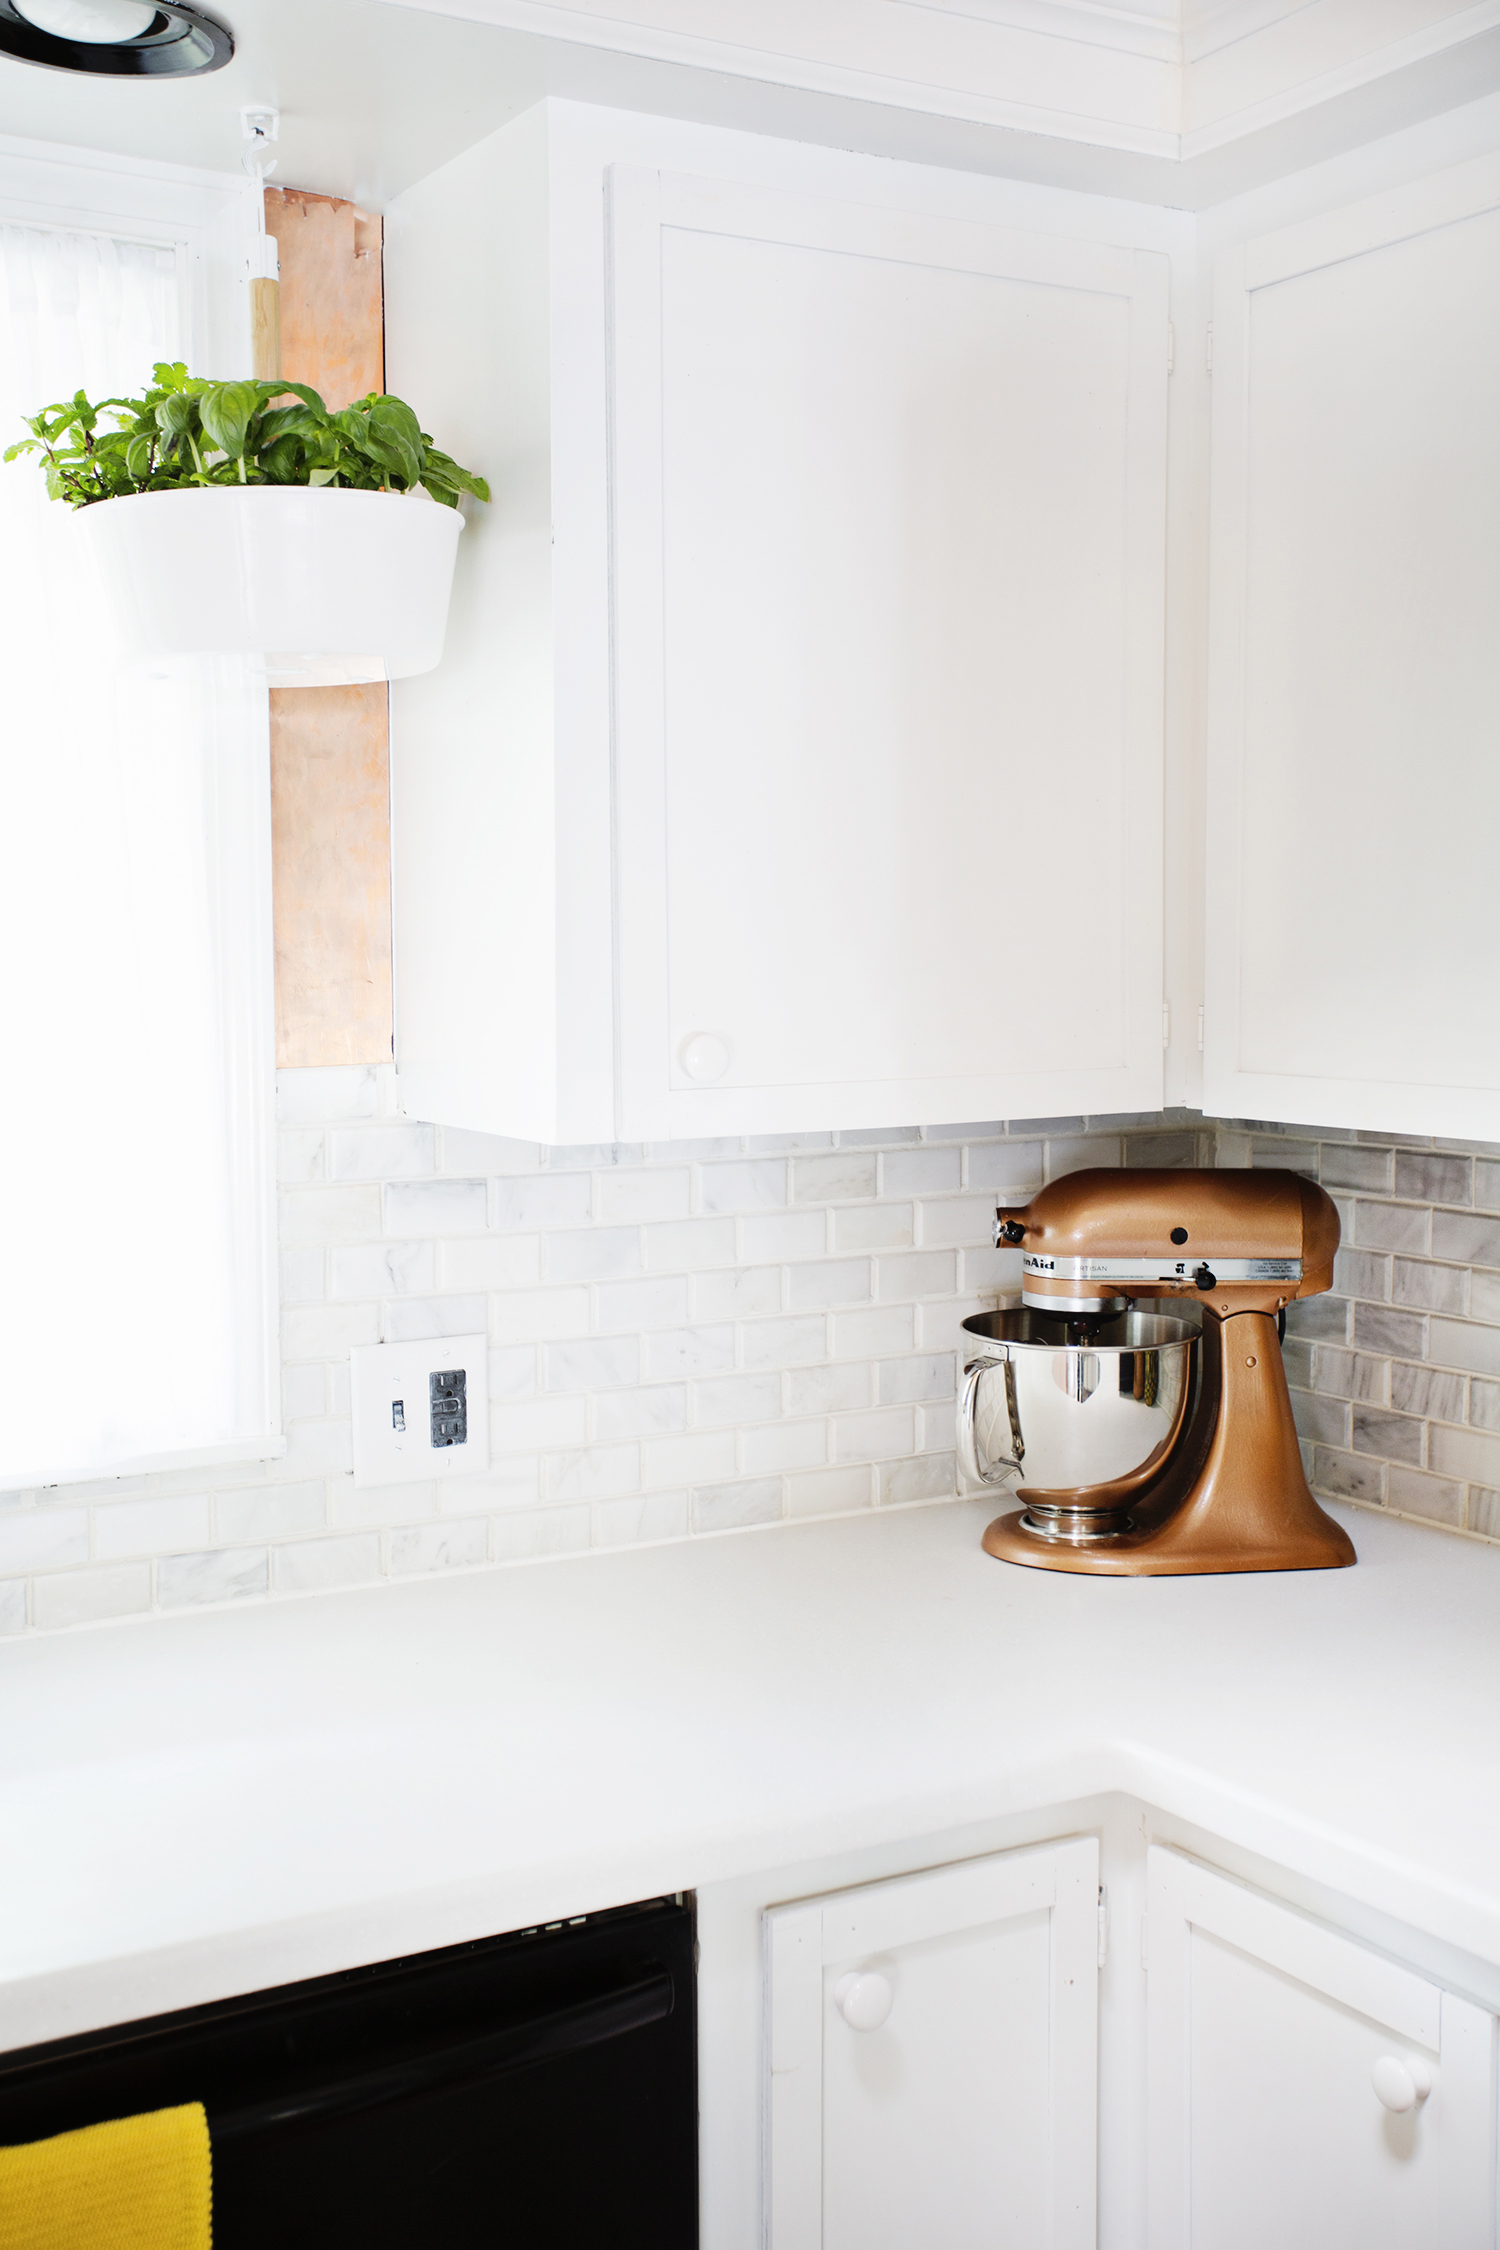 Painted kitchen aid mixer